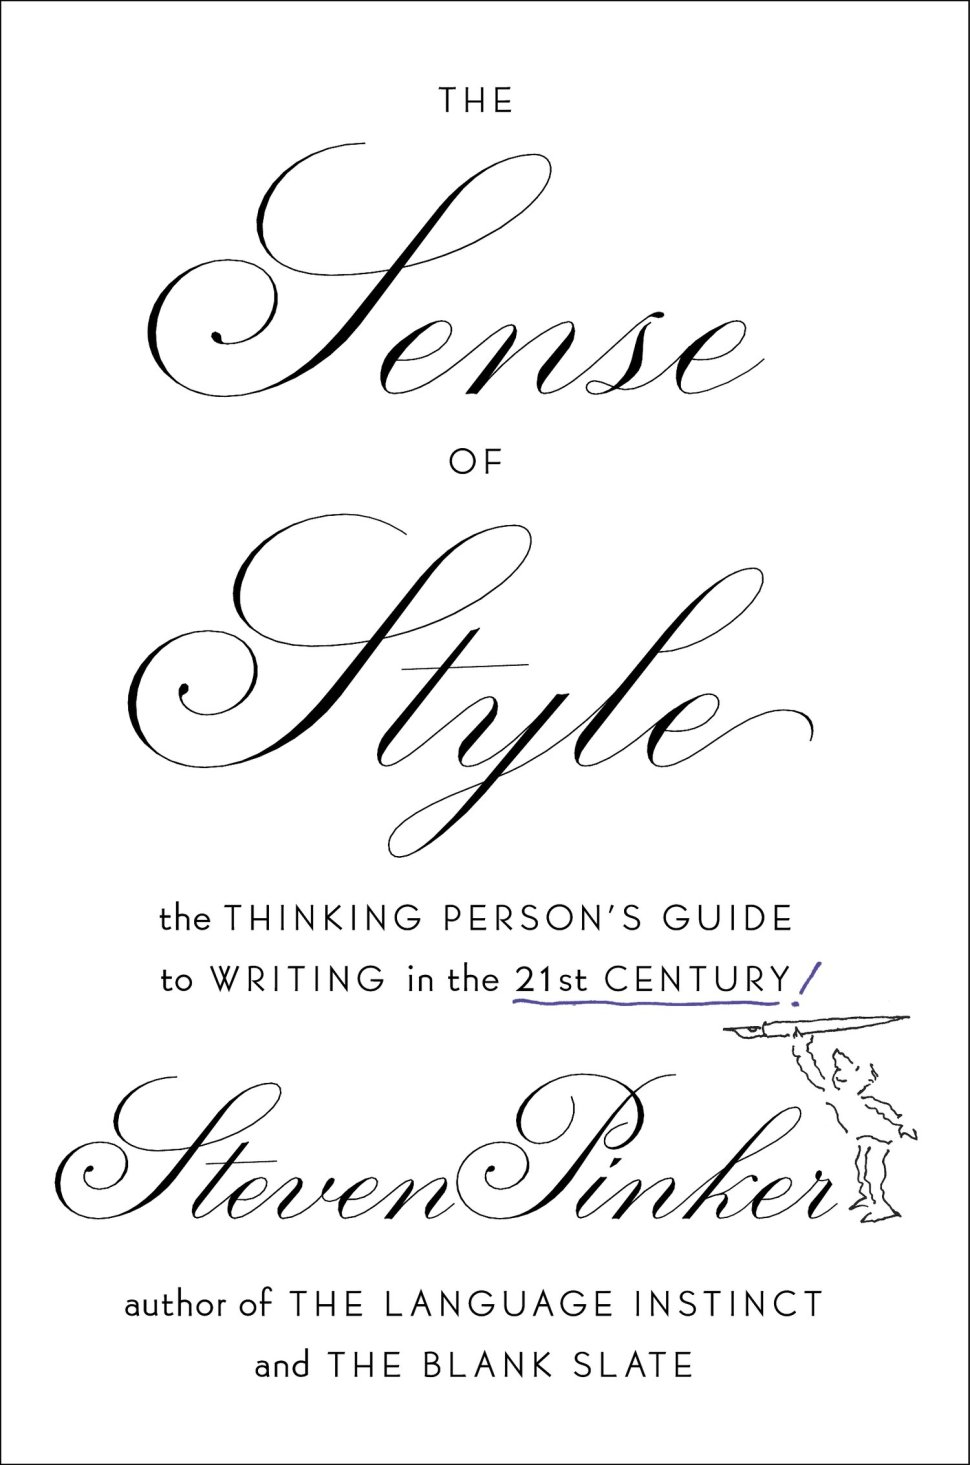 in his latest book the sense of style harvard psychologist steven pinker sets out to create a new english stylebook that celebrates the languages